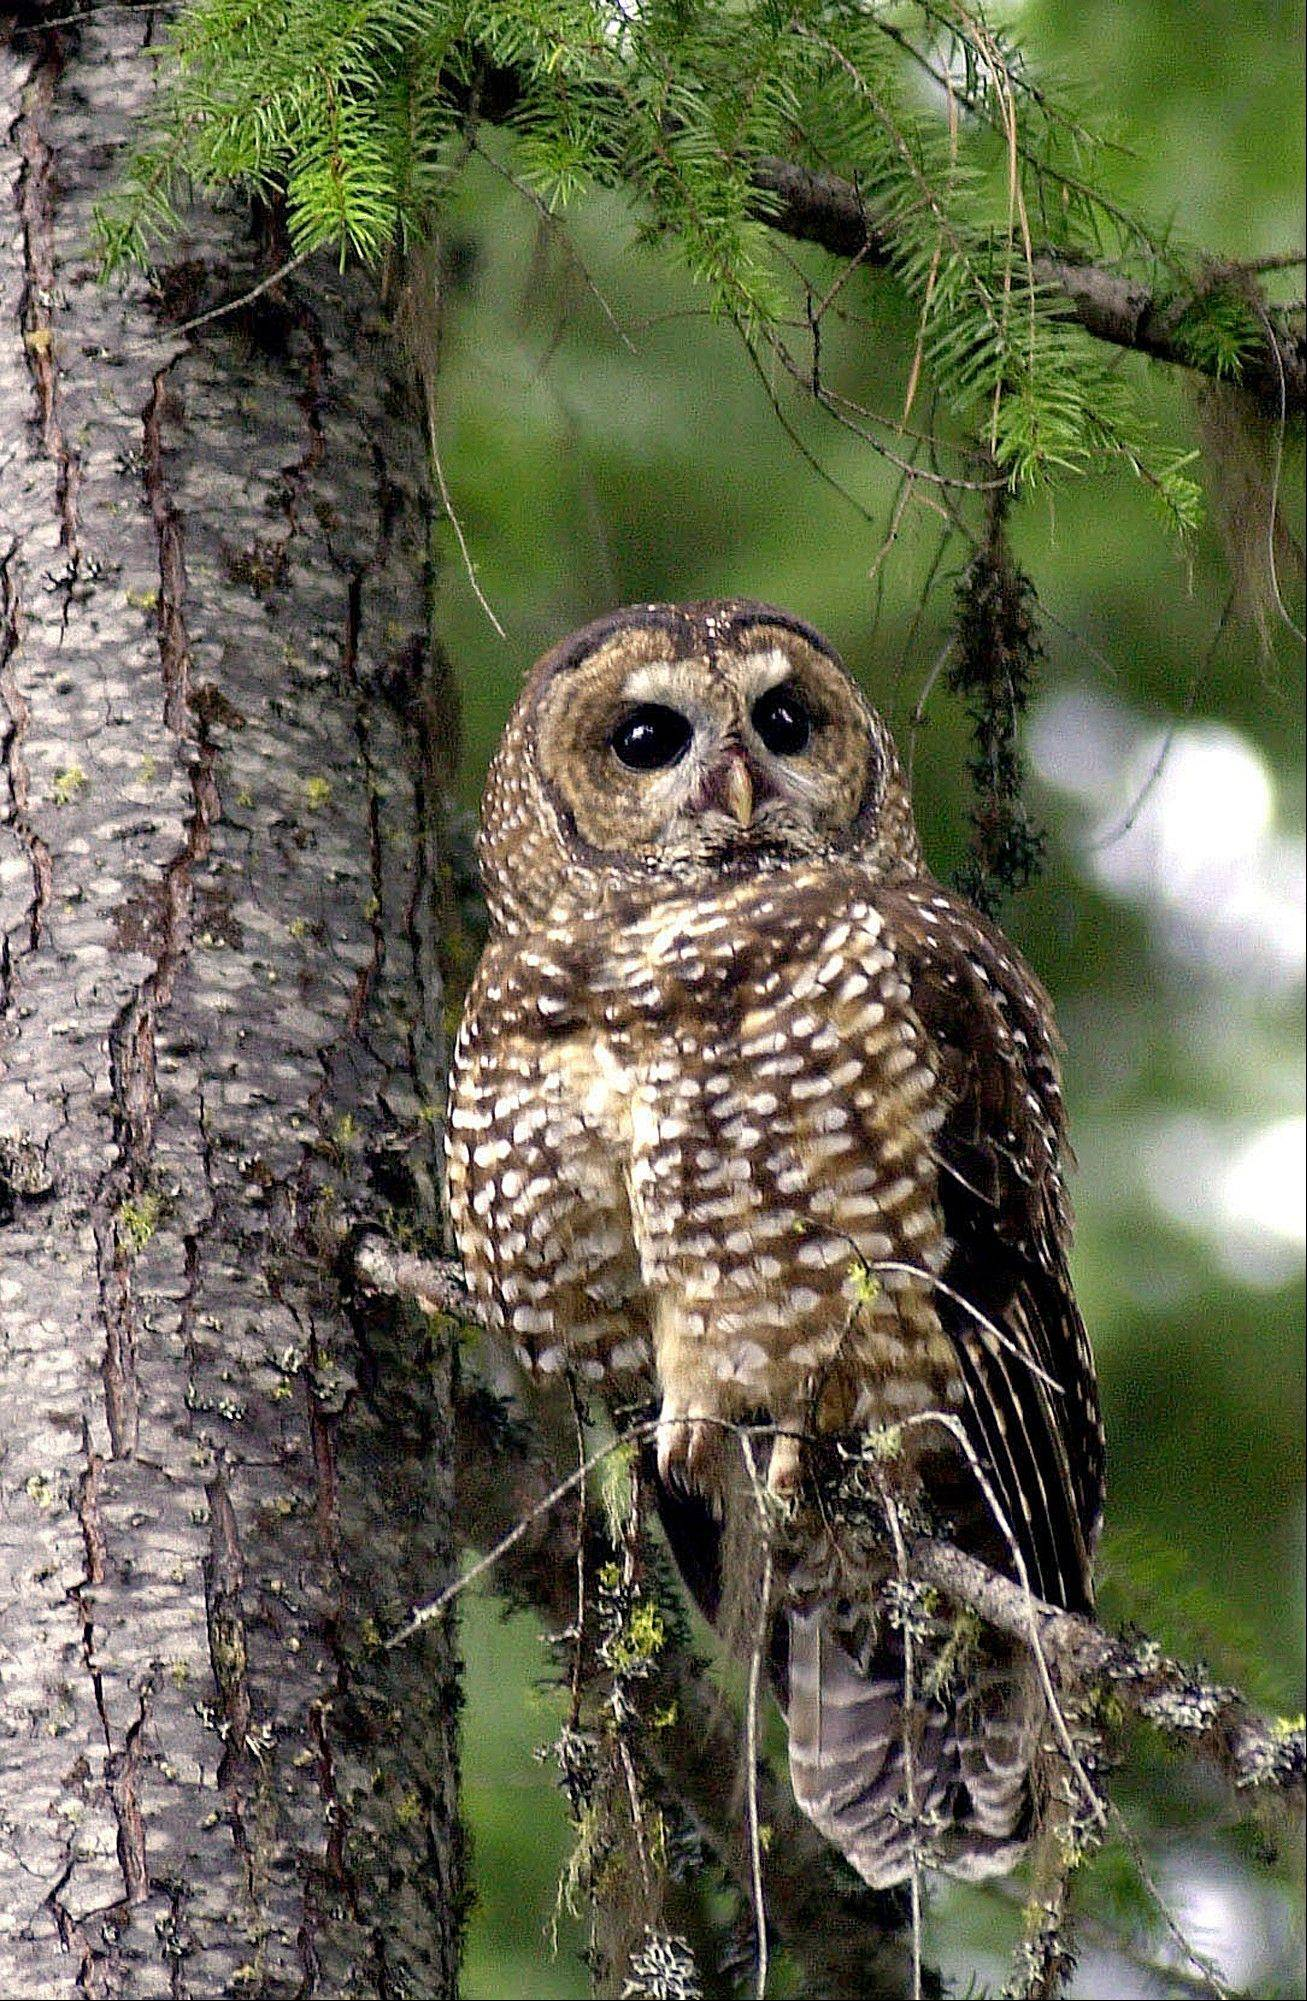 A northern spotted owl.